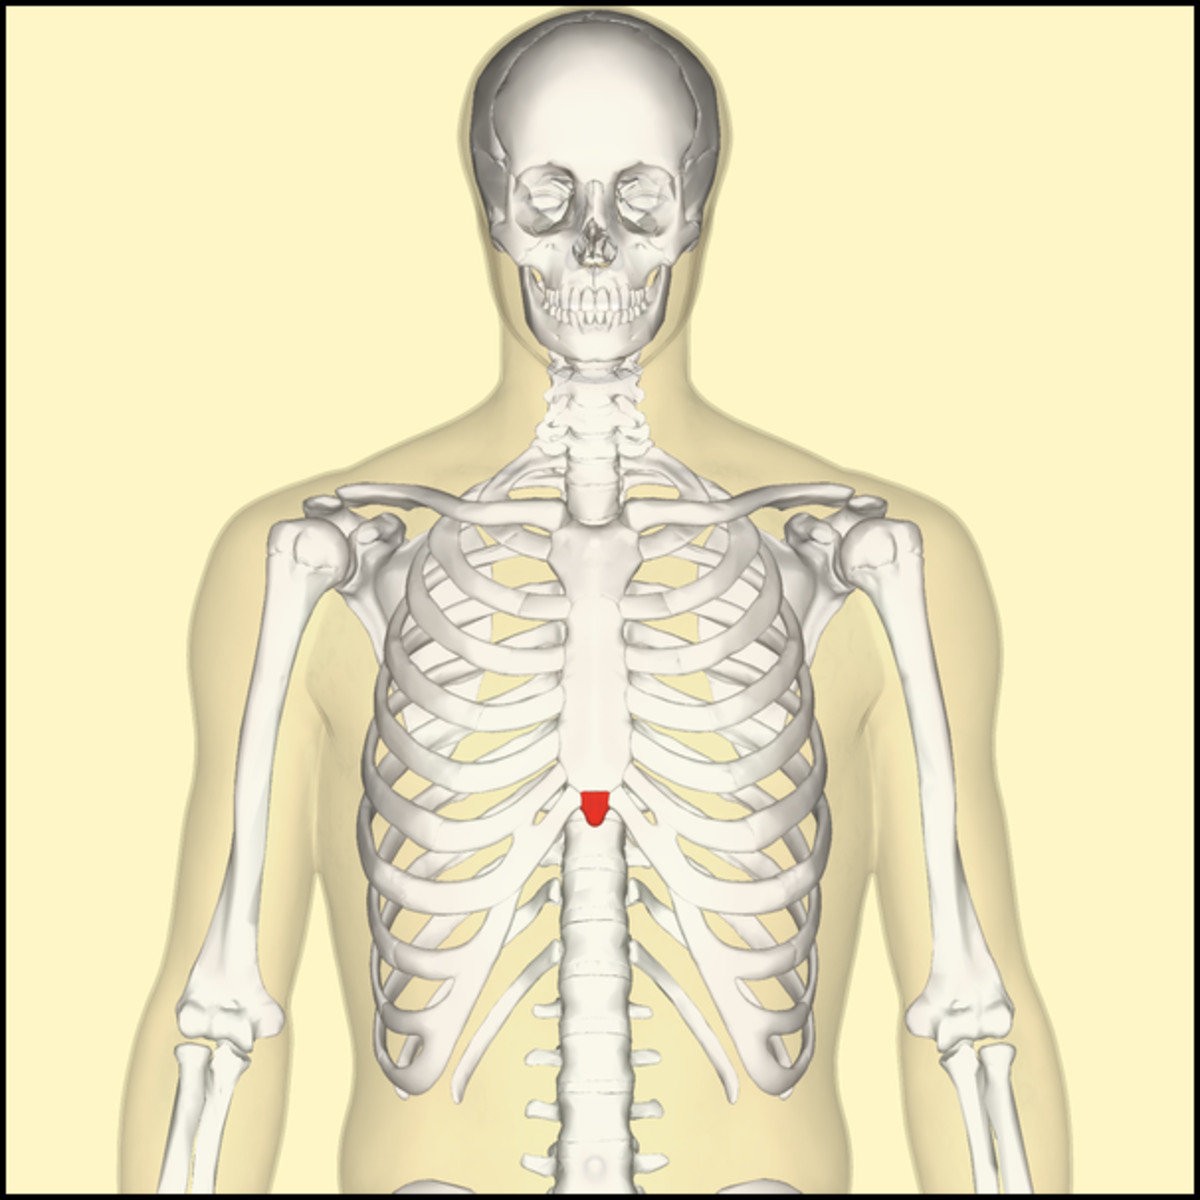 Xiphoid Process Pain: Symptoms, Causes and Diagnosis